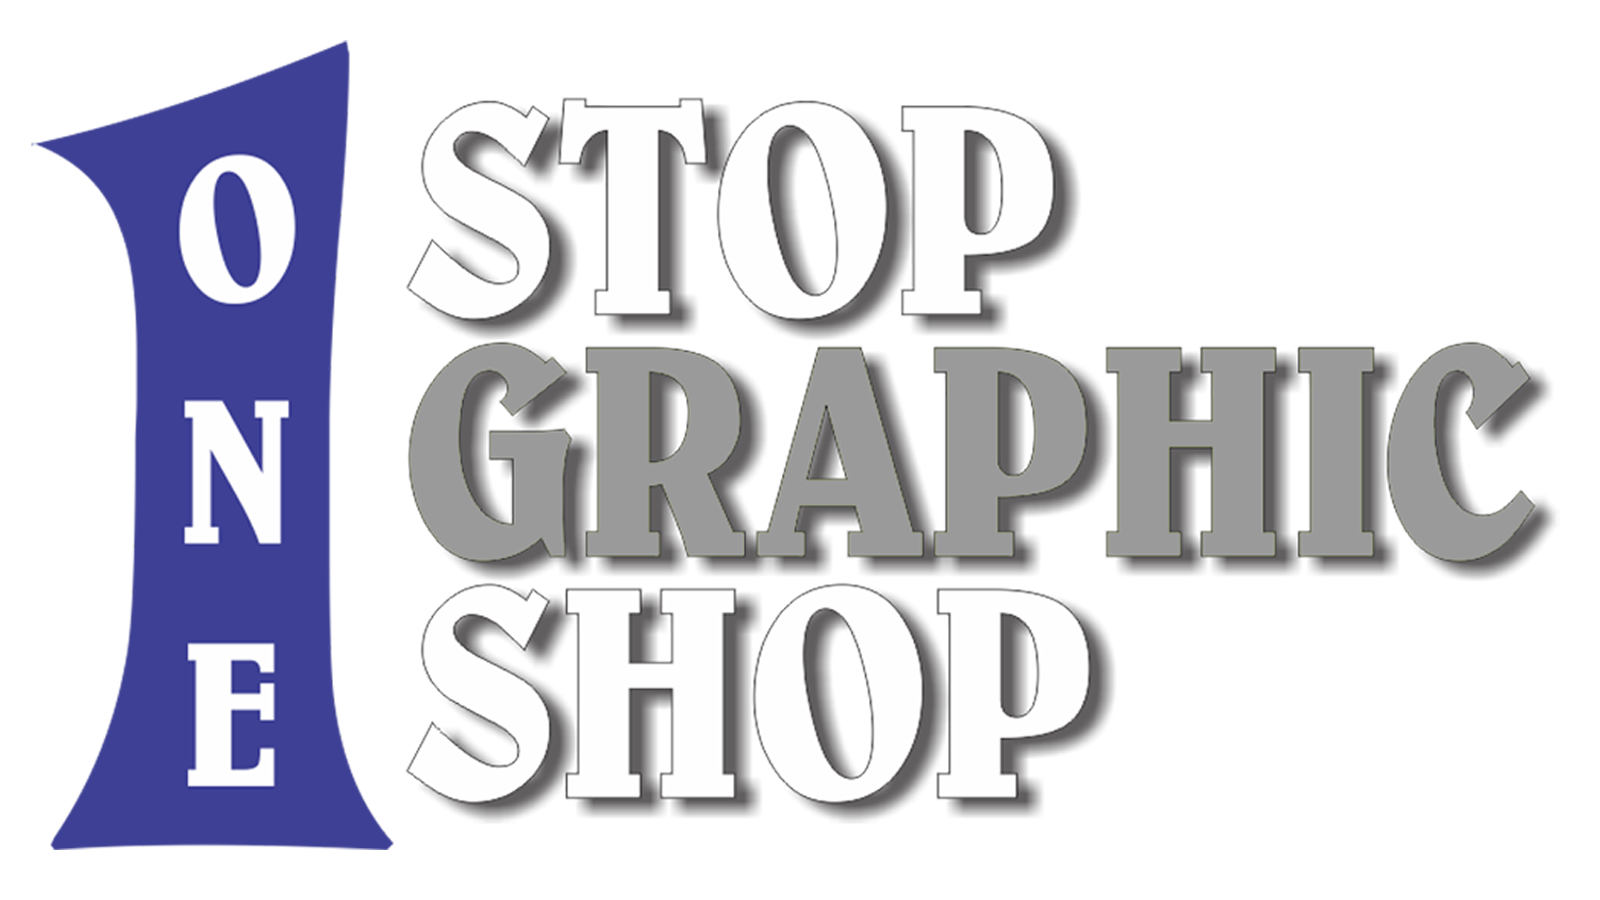 One Stop Graphic Shop